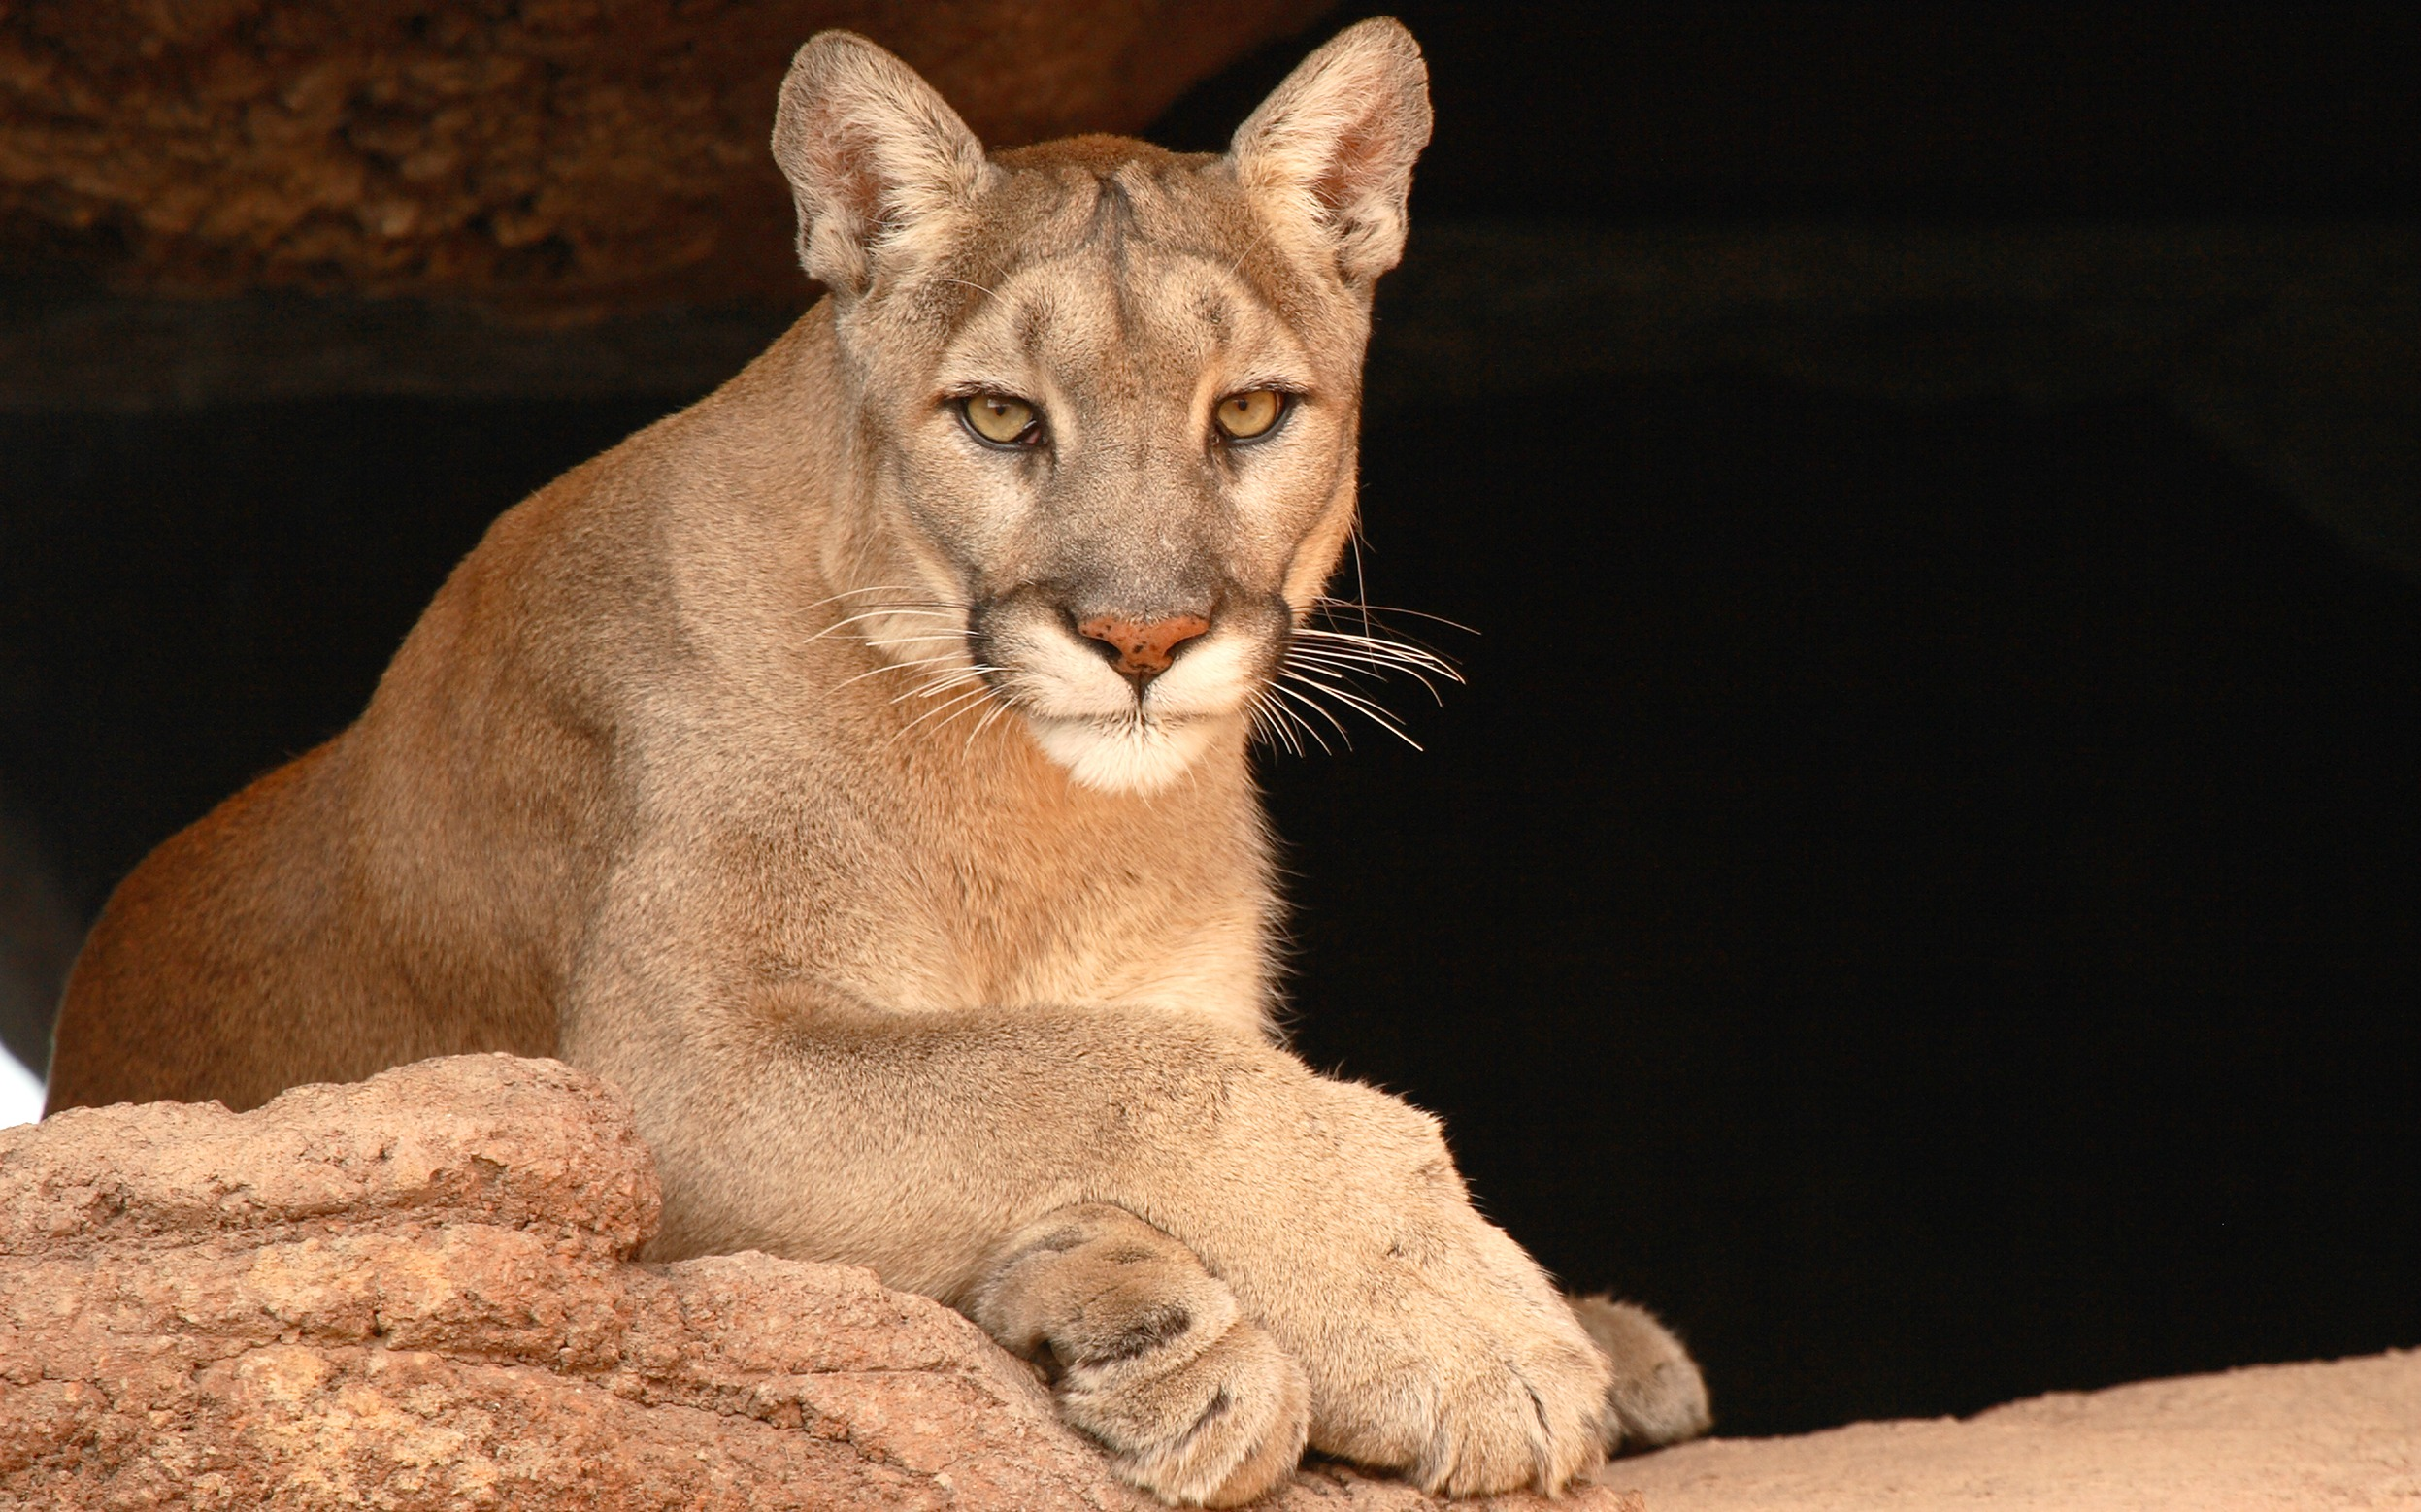 Mountain_Lion_cropped.jpg